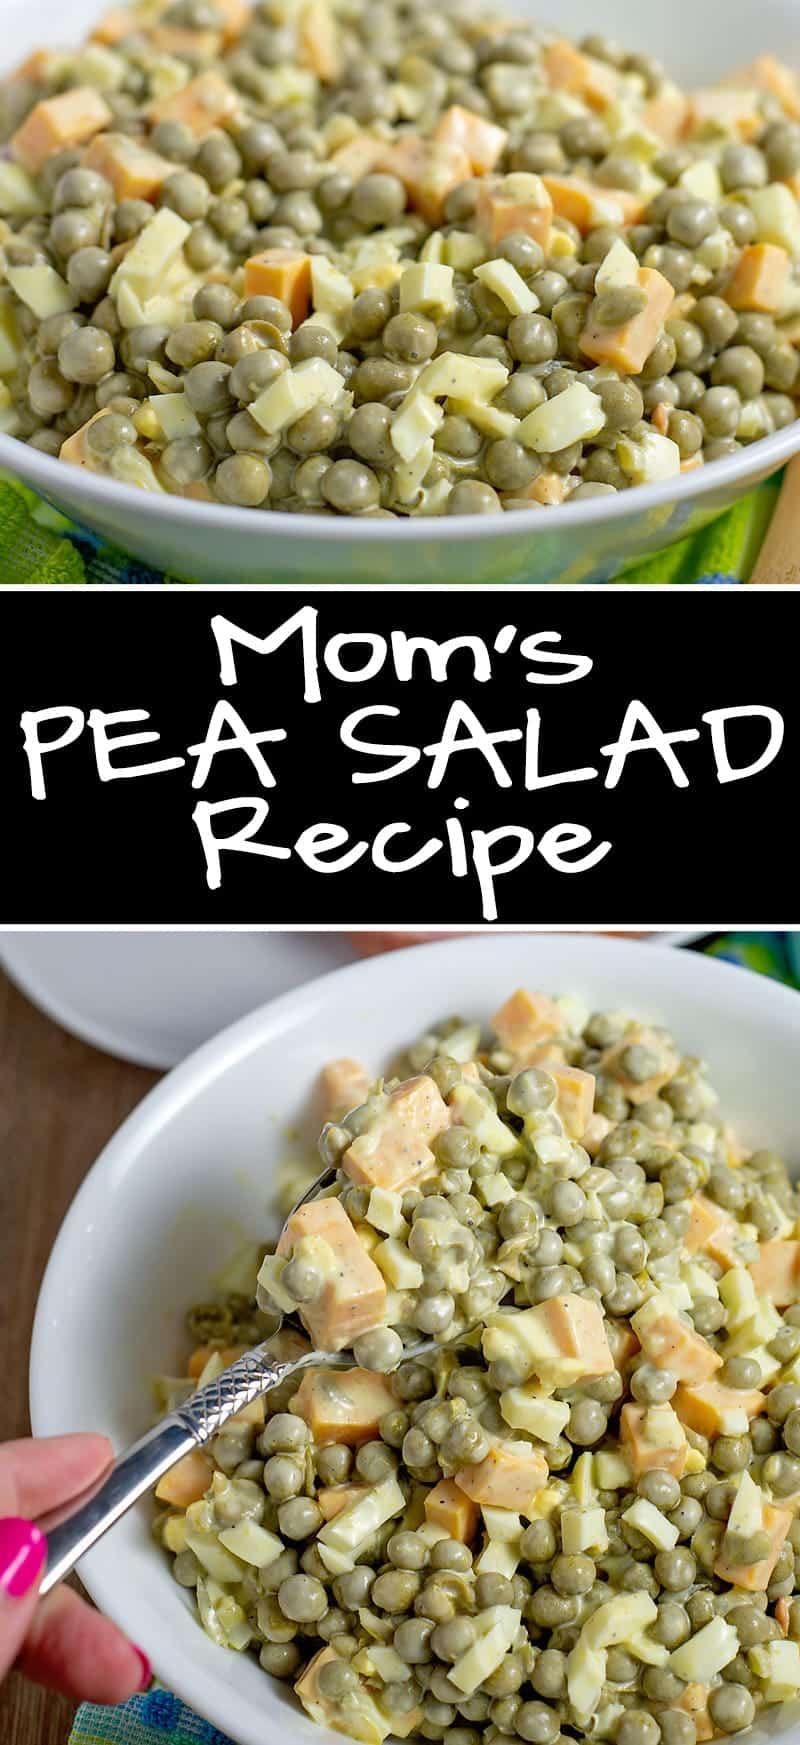 Easy Pea Salad Recipe, Just like Mom used to make it